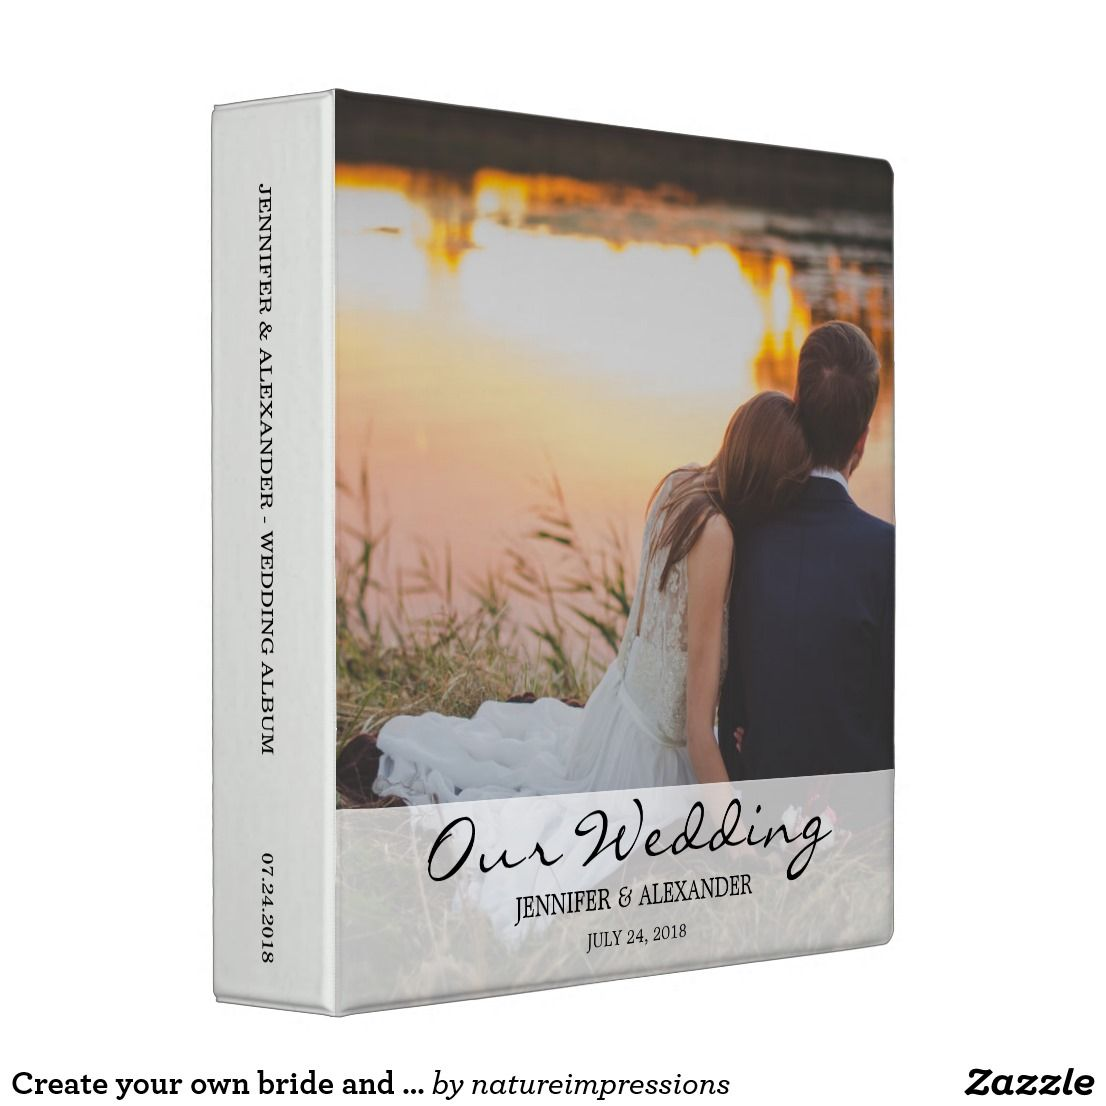 Create Your Own Bride And Groom Photo Wedding 3 Ring